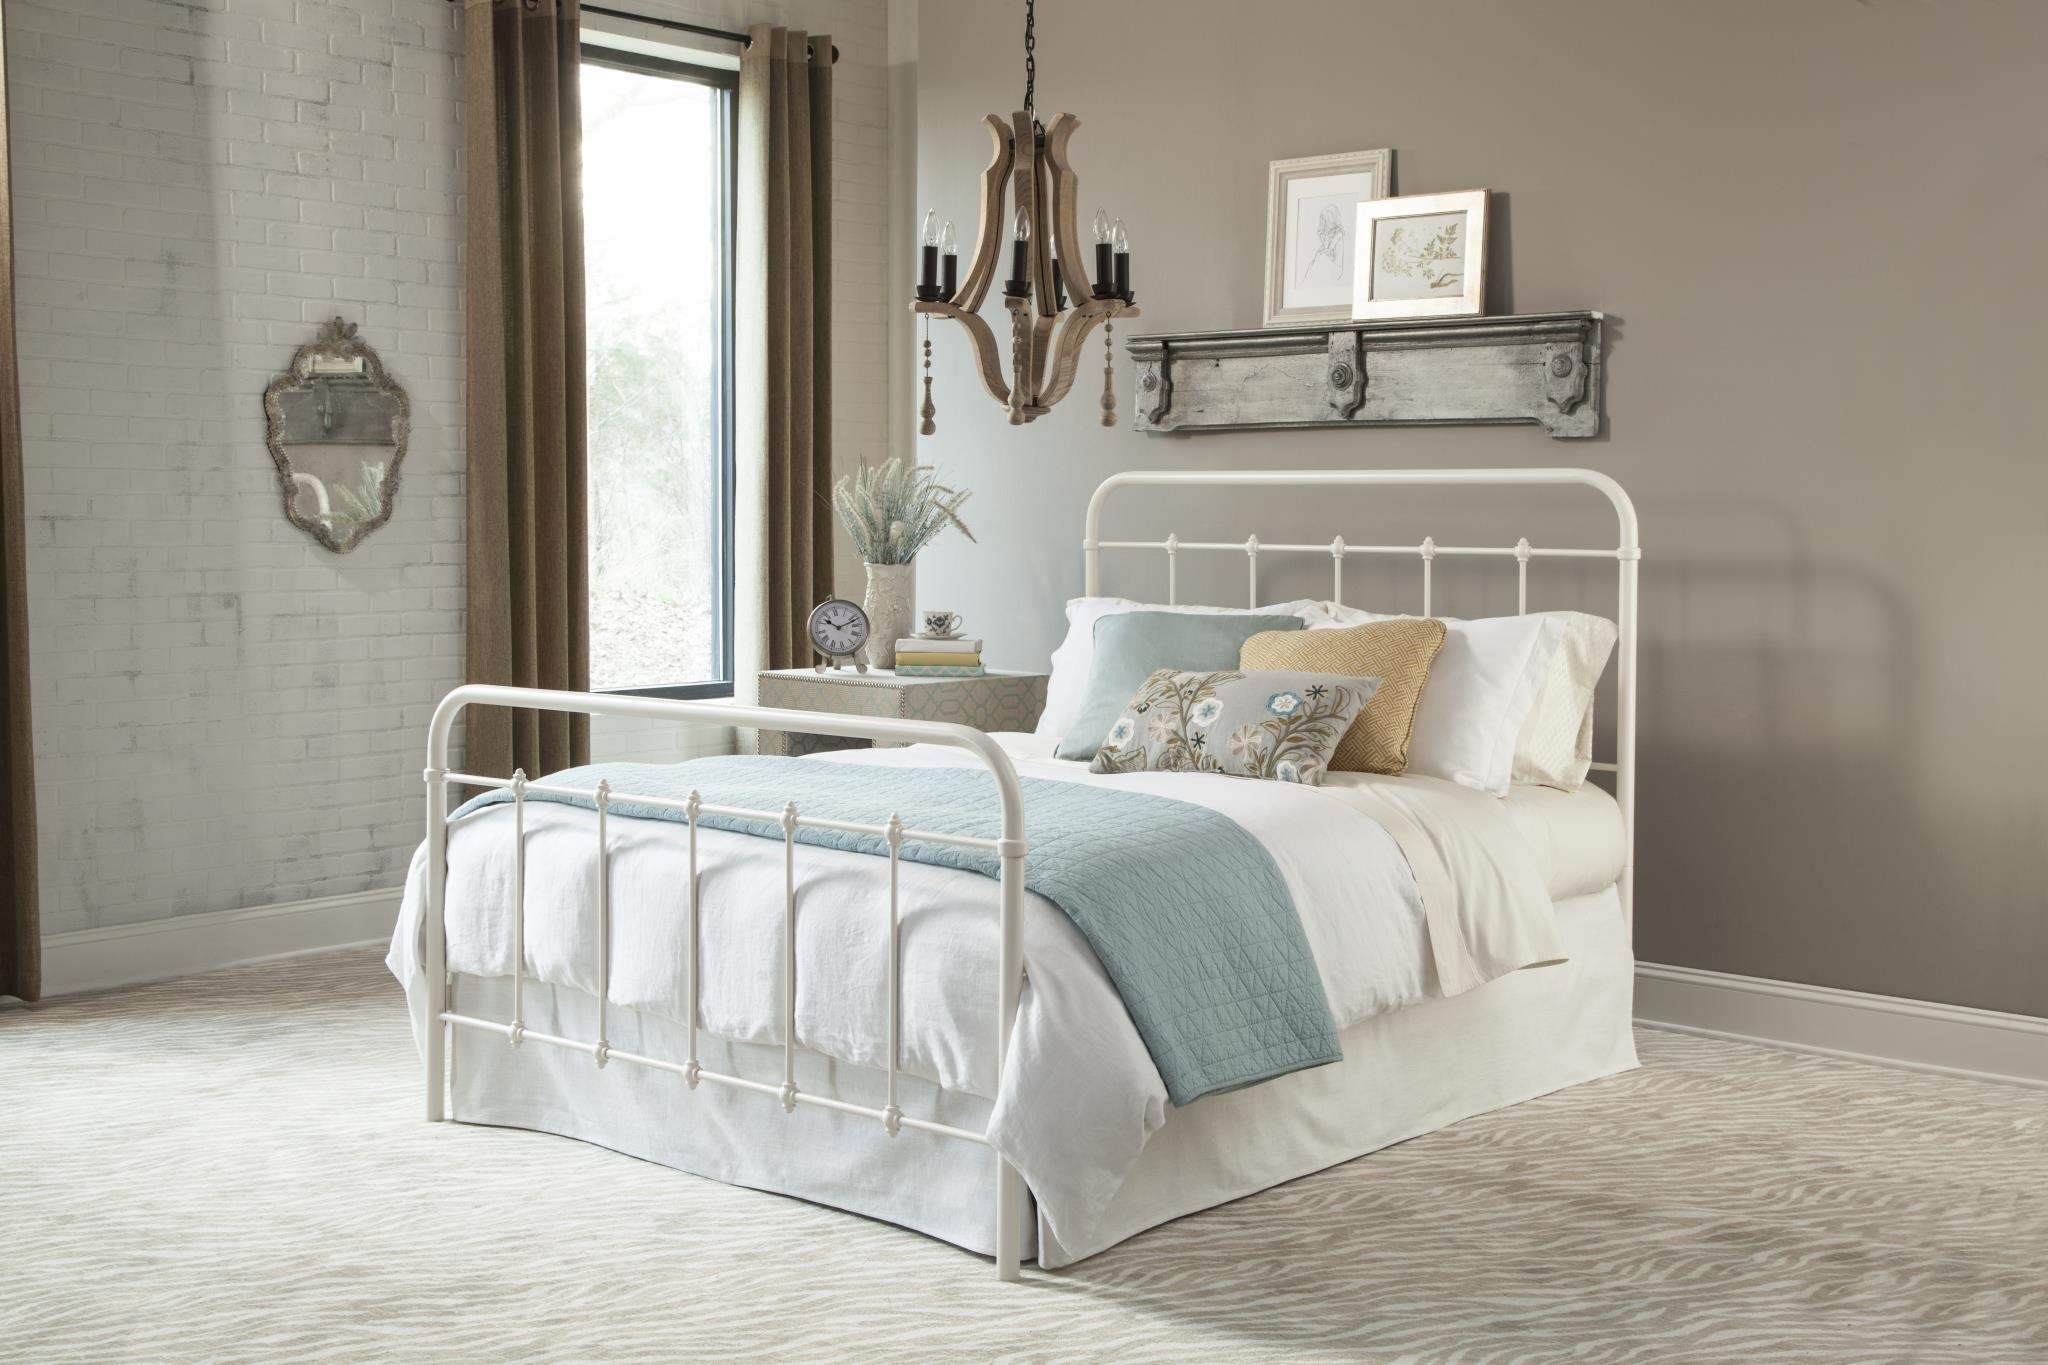 Kith Furniture 899 White Queen Metal Bed - Item Number: GRP-899-QUEENBED